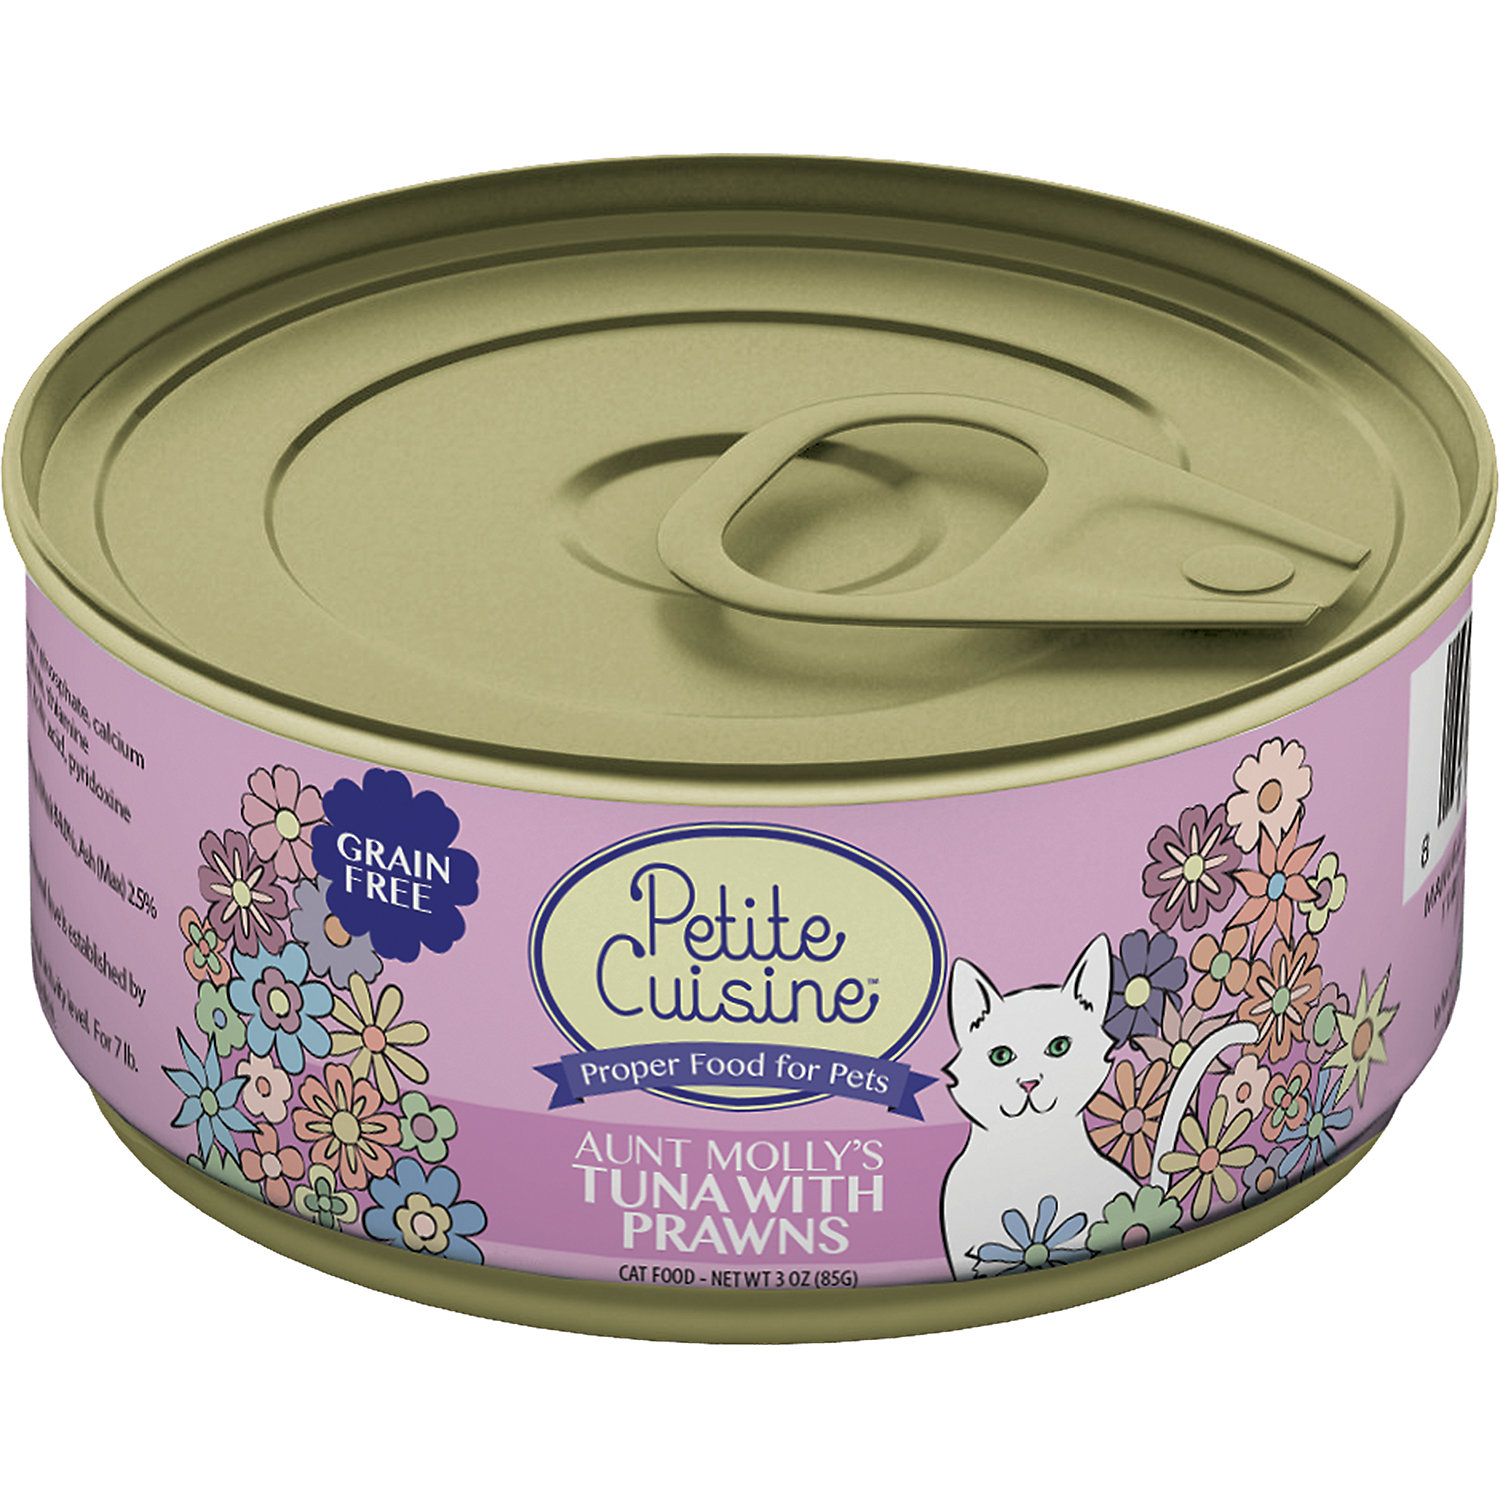 Petite Cuisine Aunt Mollys Tuna With Prawns Gourmet Canned Cat Food